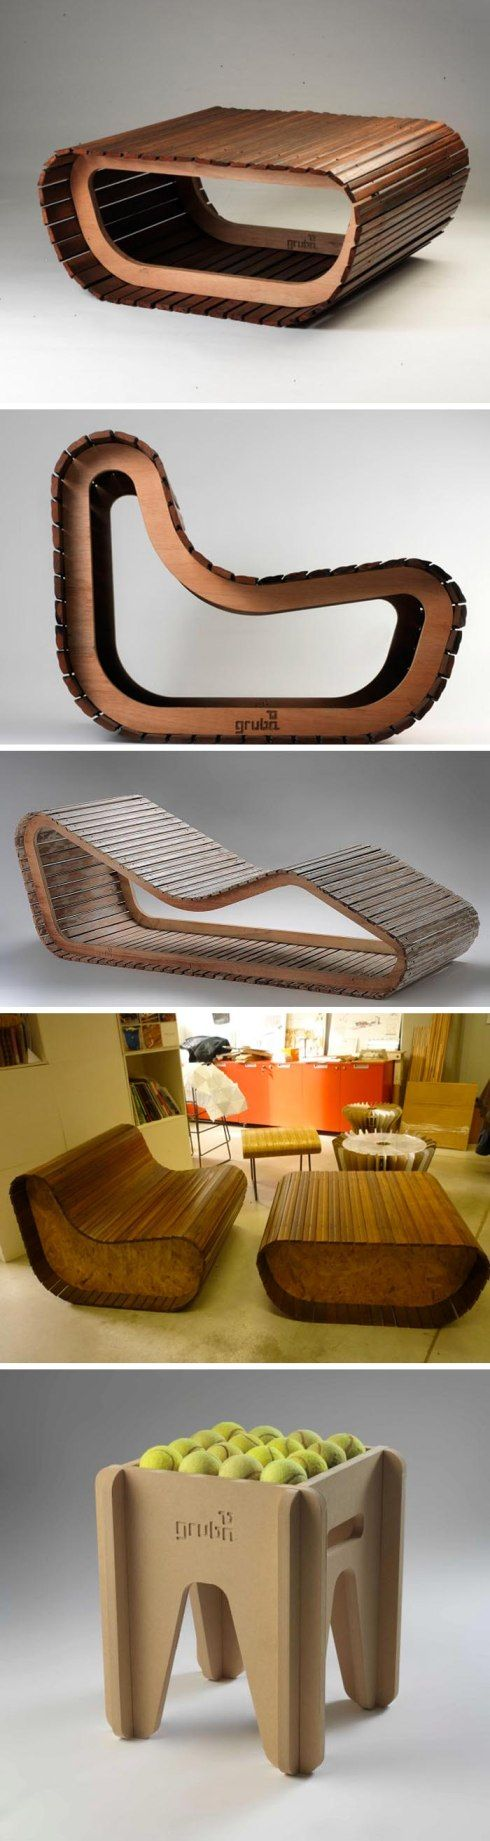 gruba sustainable furniture design project s pinterest cnc